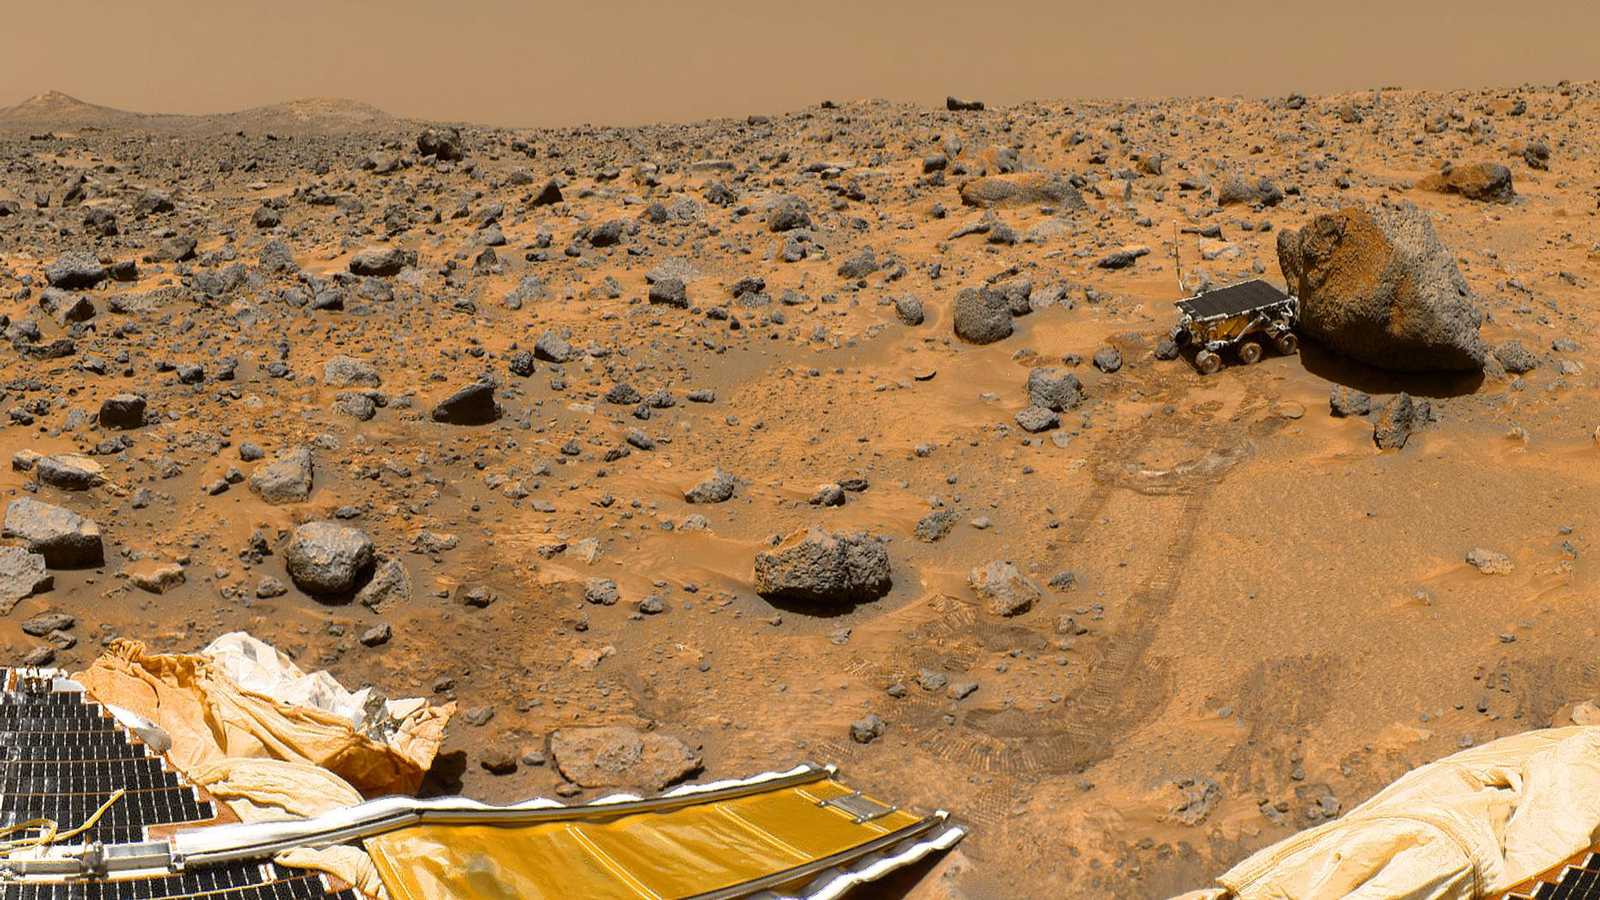 The rust-red Martian surface photographed by NASA's Pathfinder Rover, currently exploring the Martian surface. Photo credit: NASA